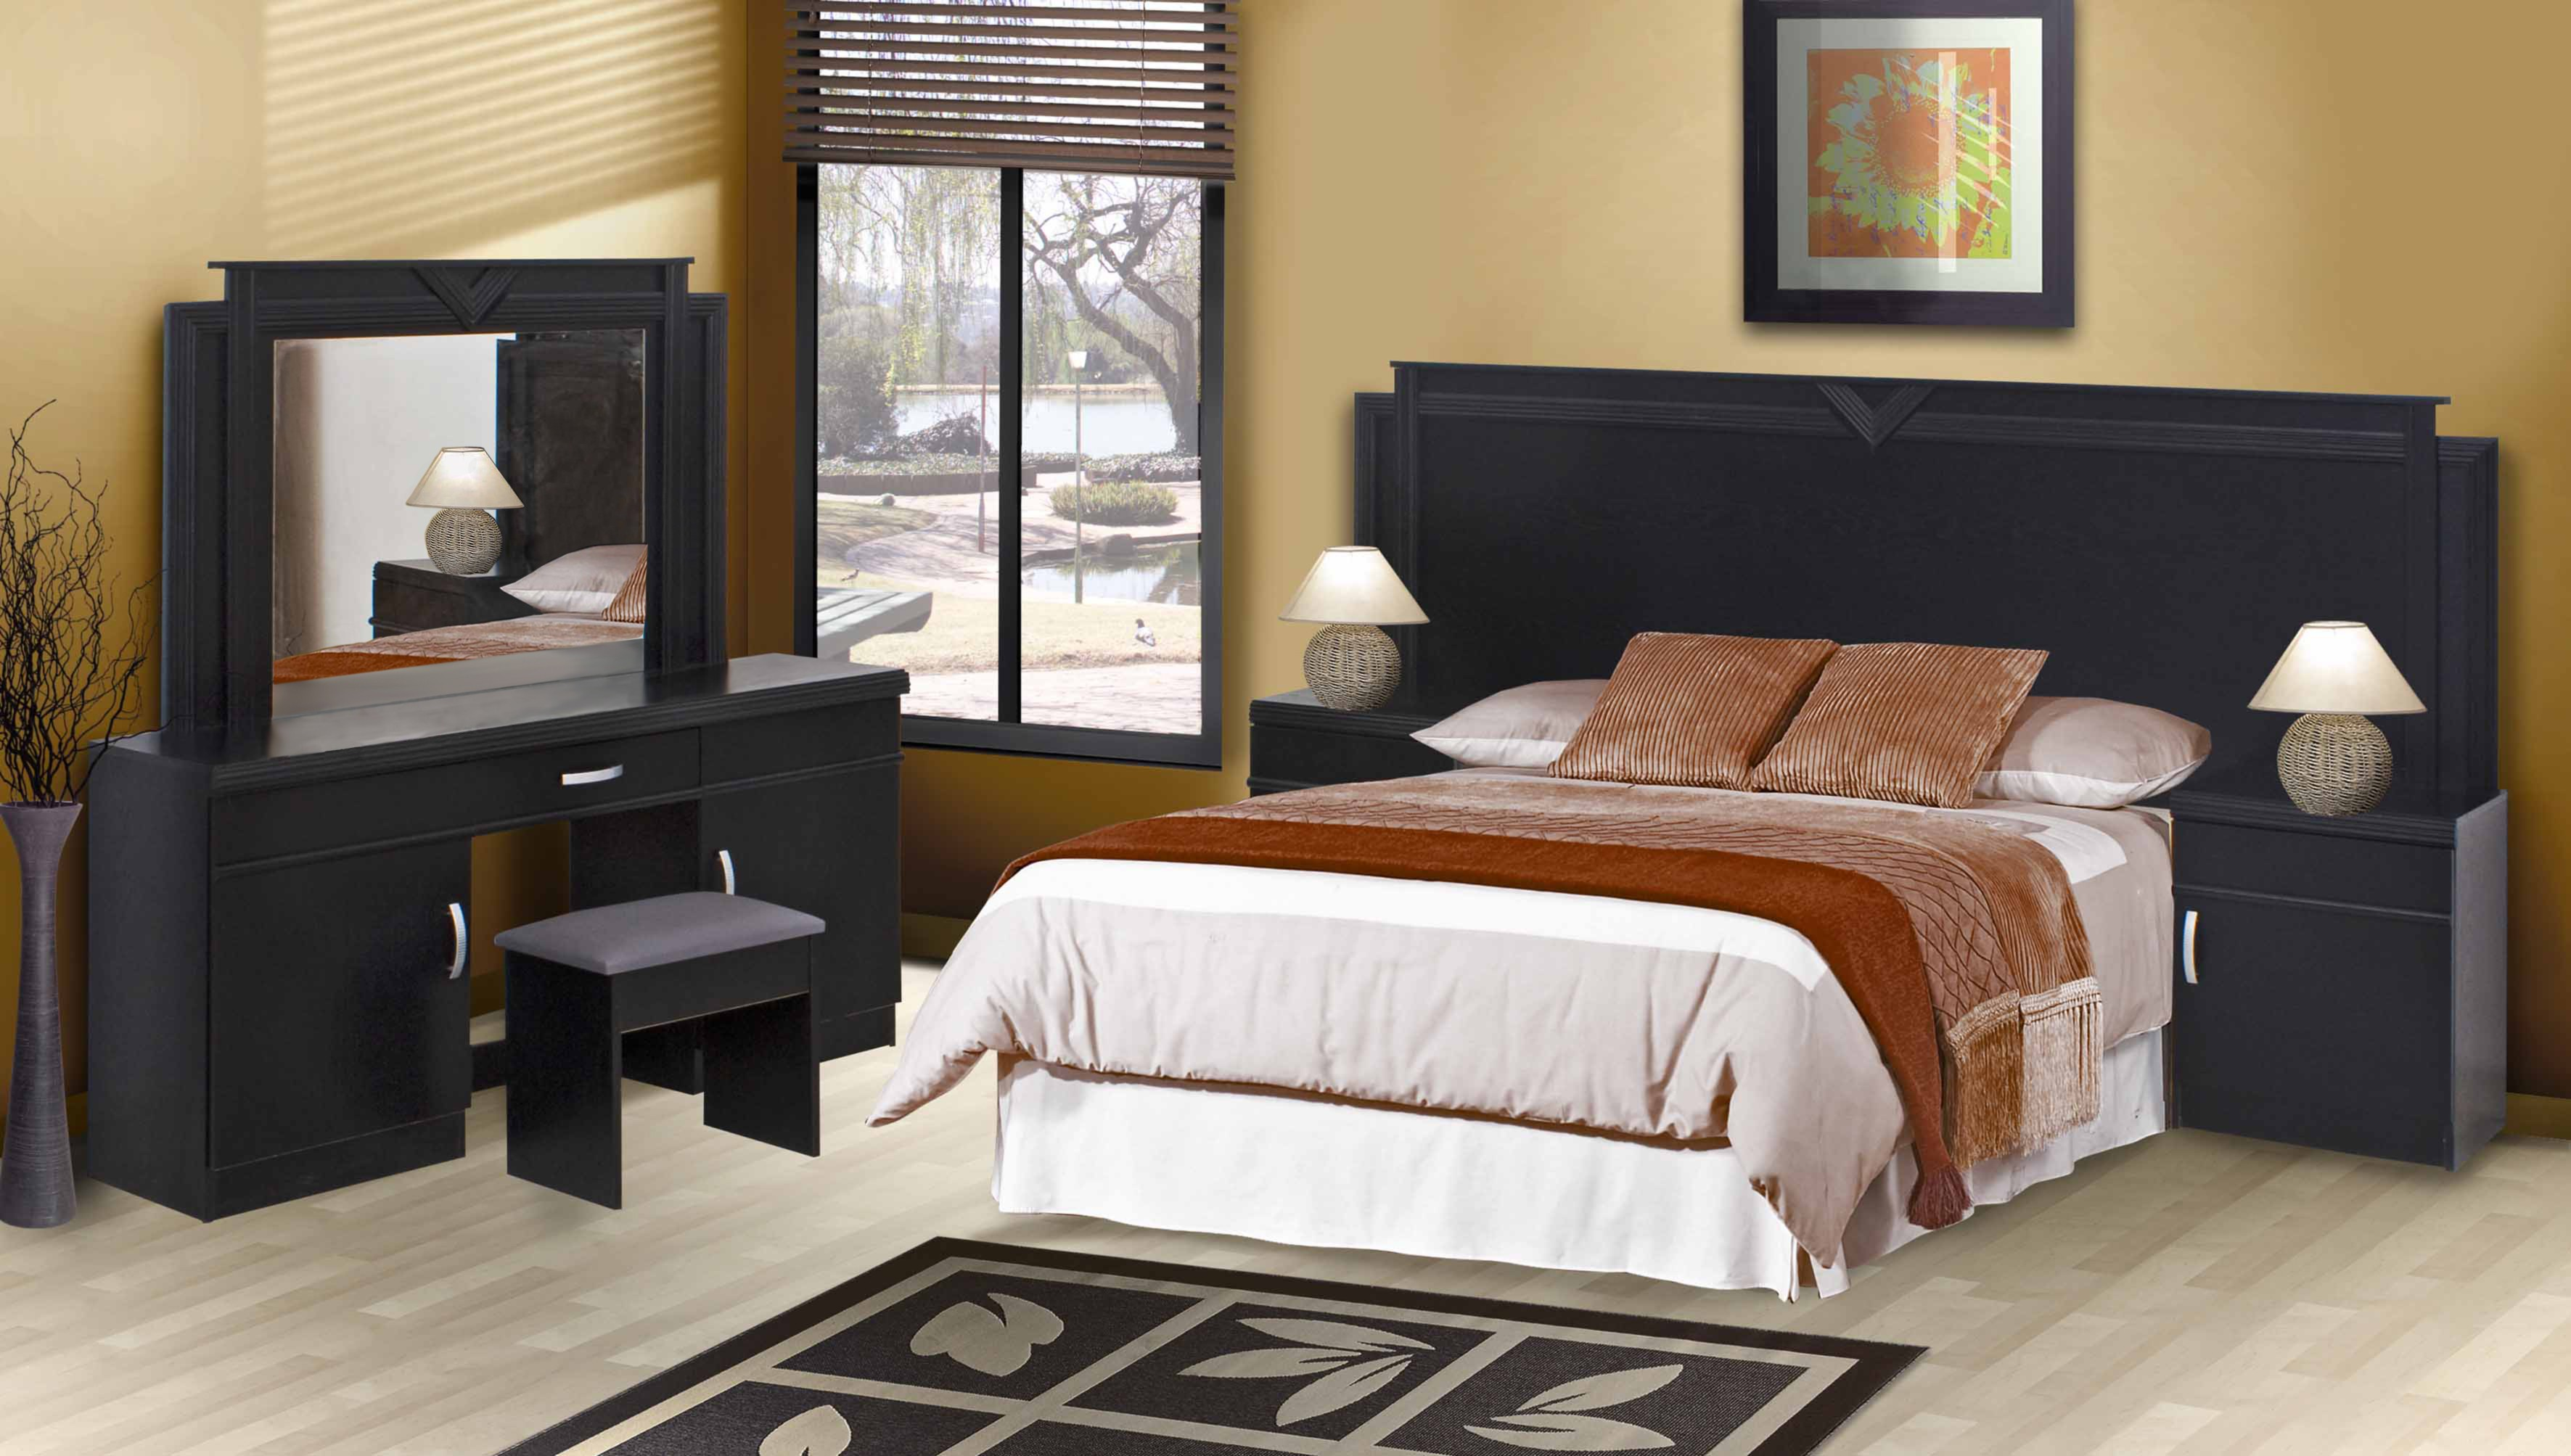 Bedroom Suite Ideas - goodworksfurniture